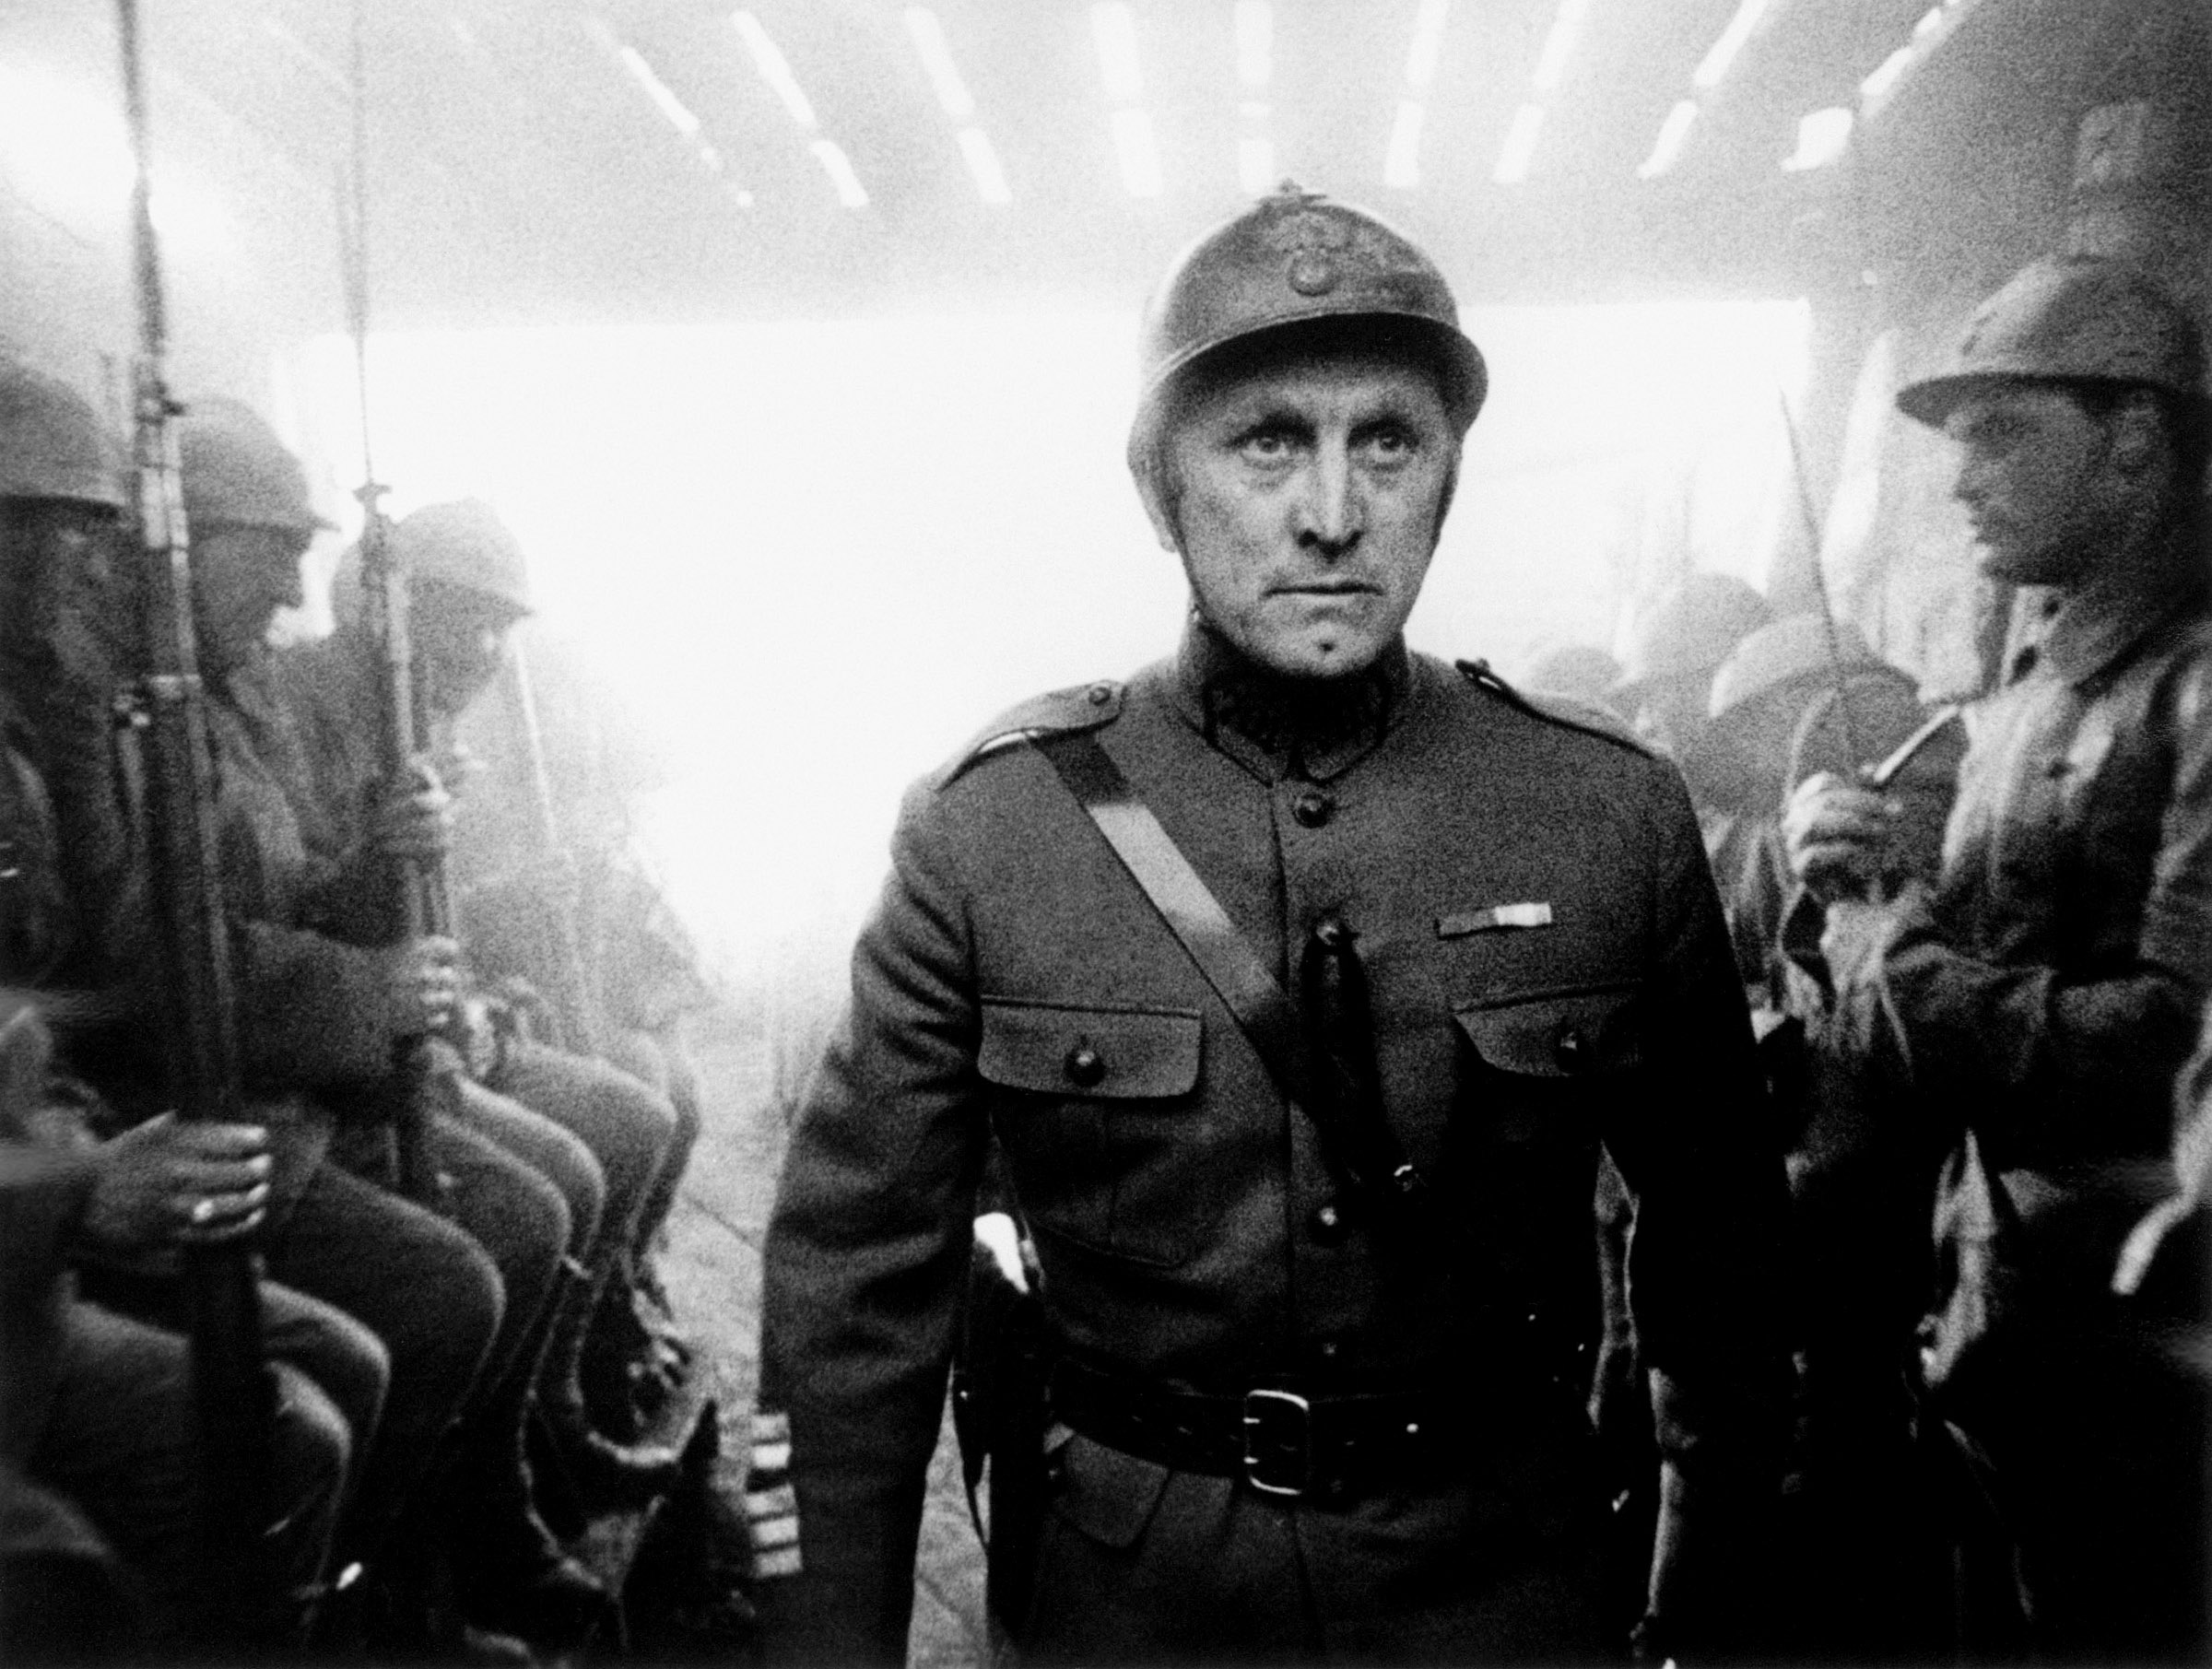 Kirk Douglas in Paths of Glory, 1957.